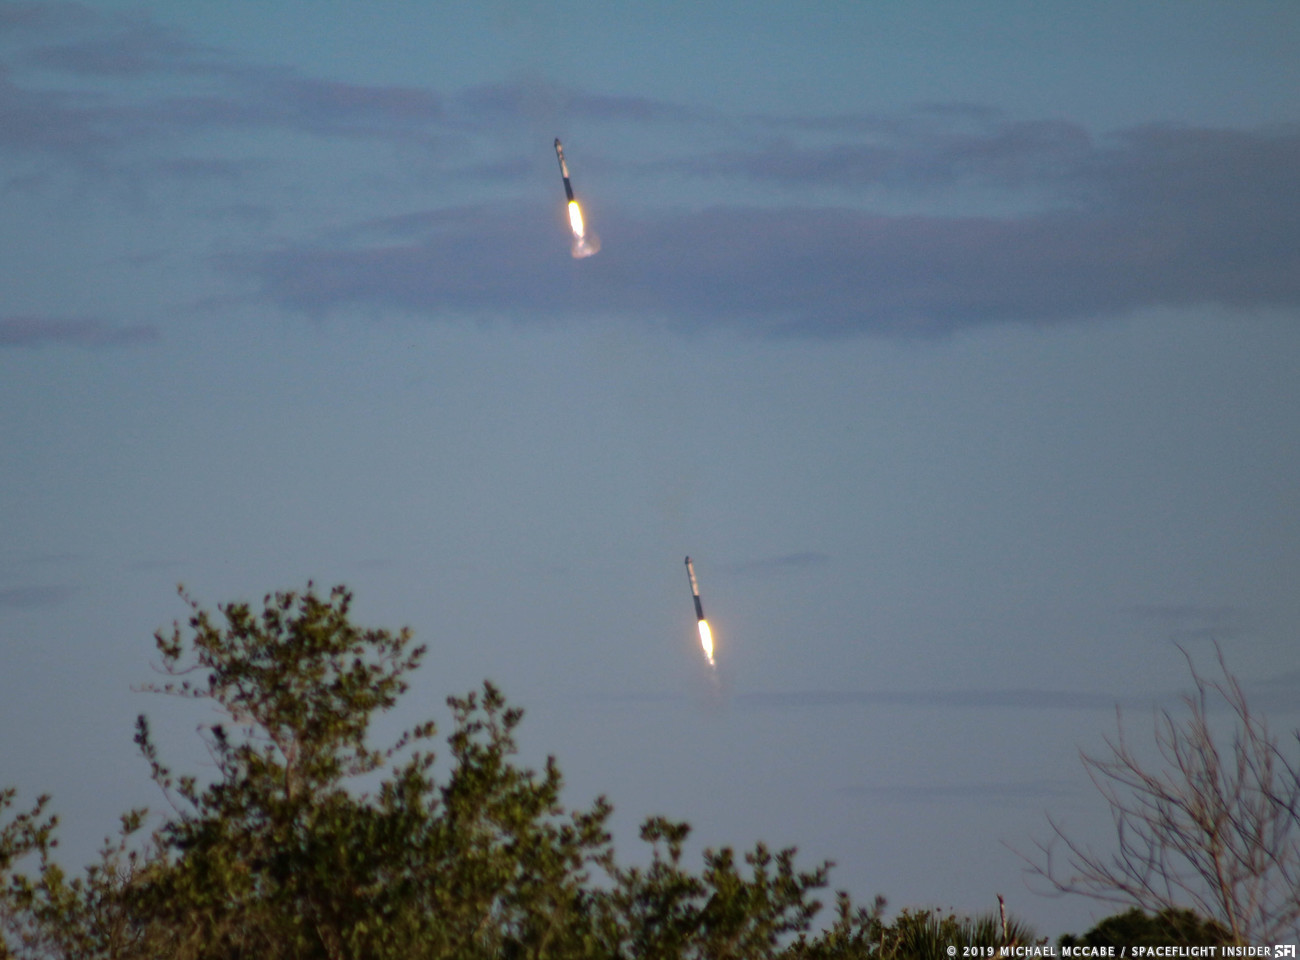 Two of the three booster cores used for Thursday's flight touch down at Canaveral's Landing Zones 1 and 2. Photo Credit: Michael McCabe / SpaceFlight Insider